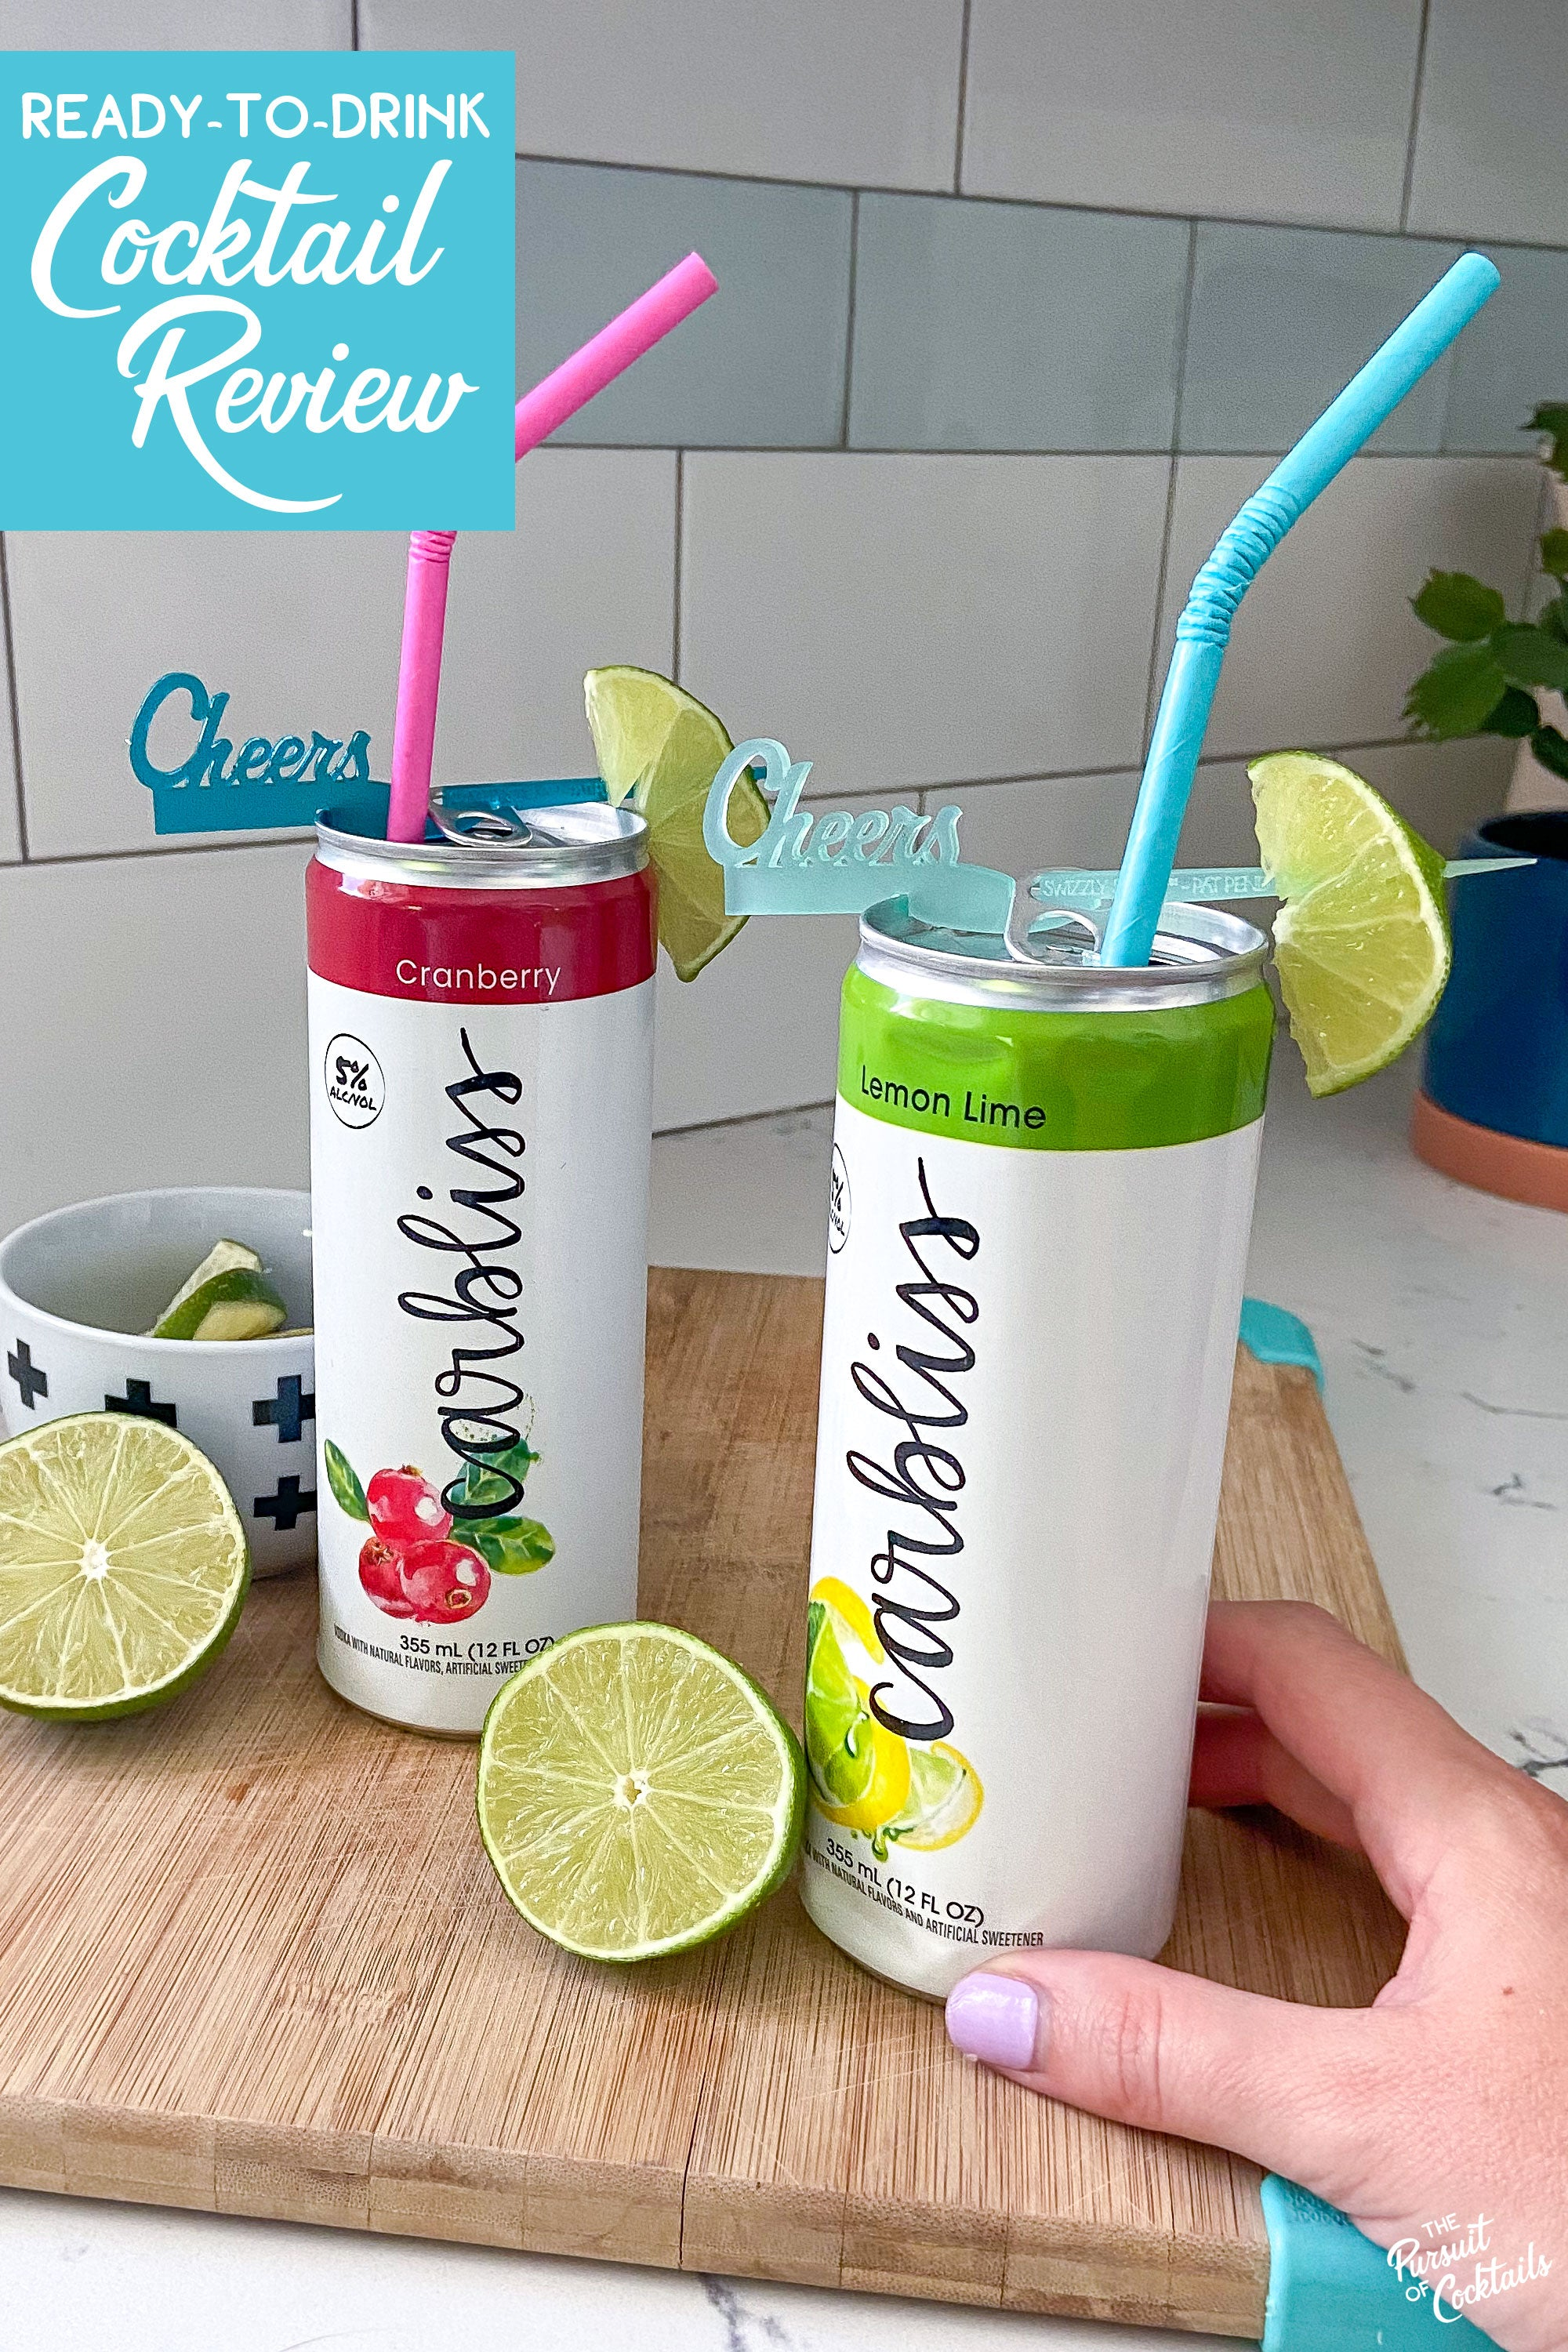 Canned cocktail review of Carbliss by The Pursuit of Cocktails